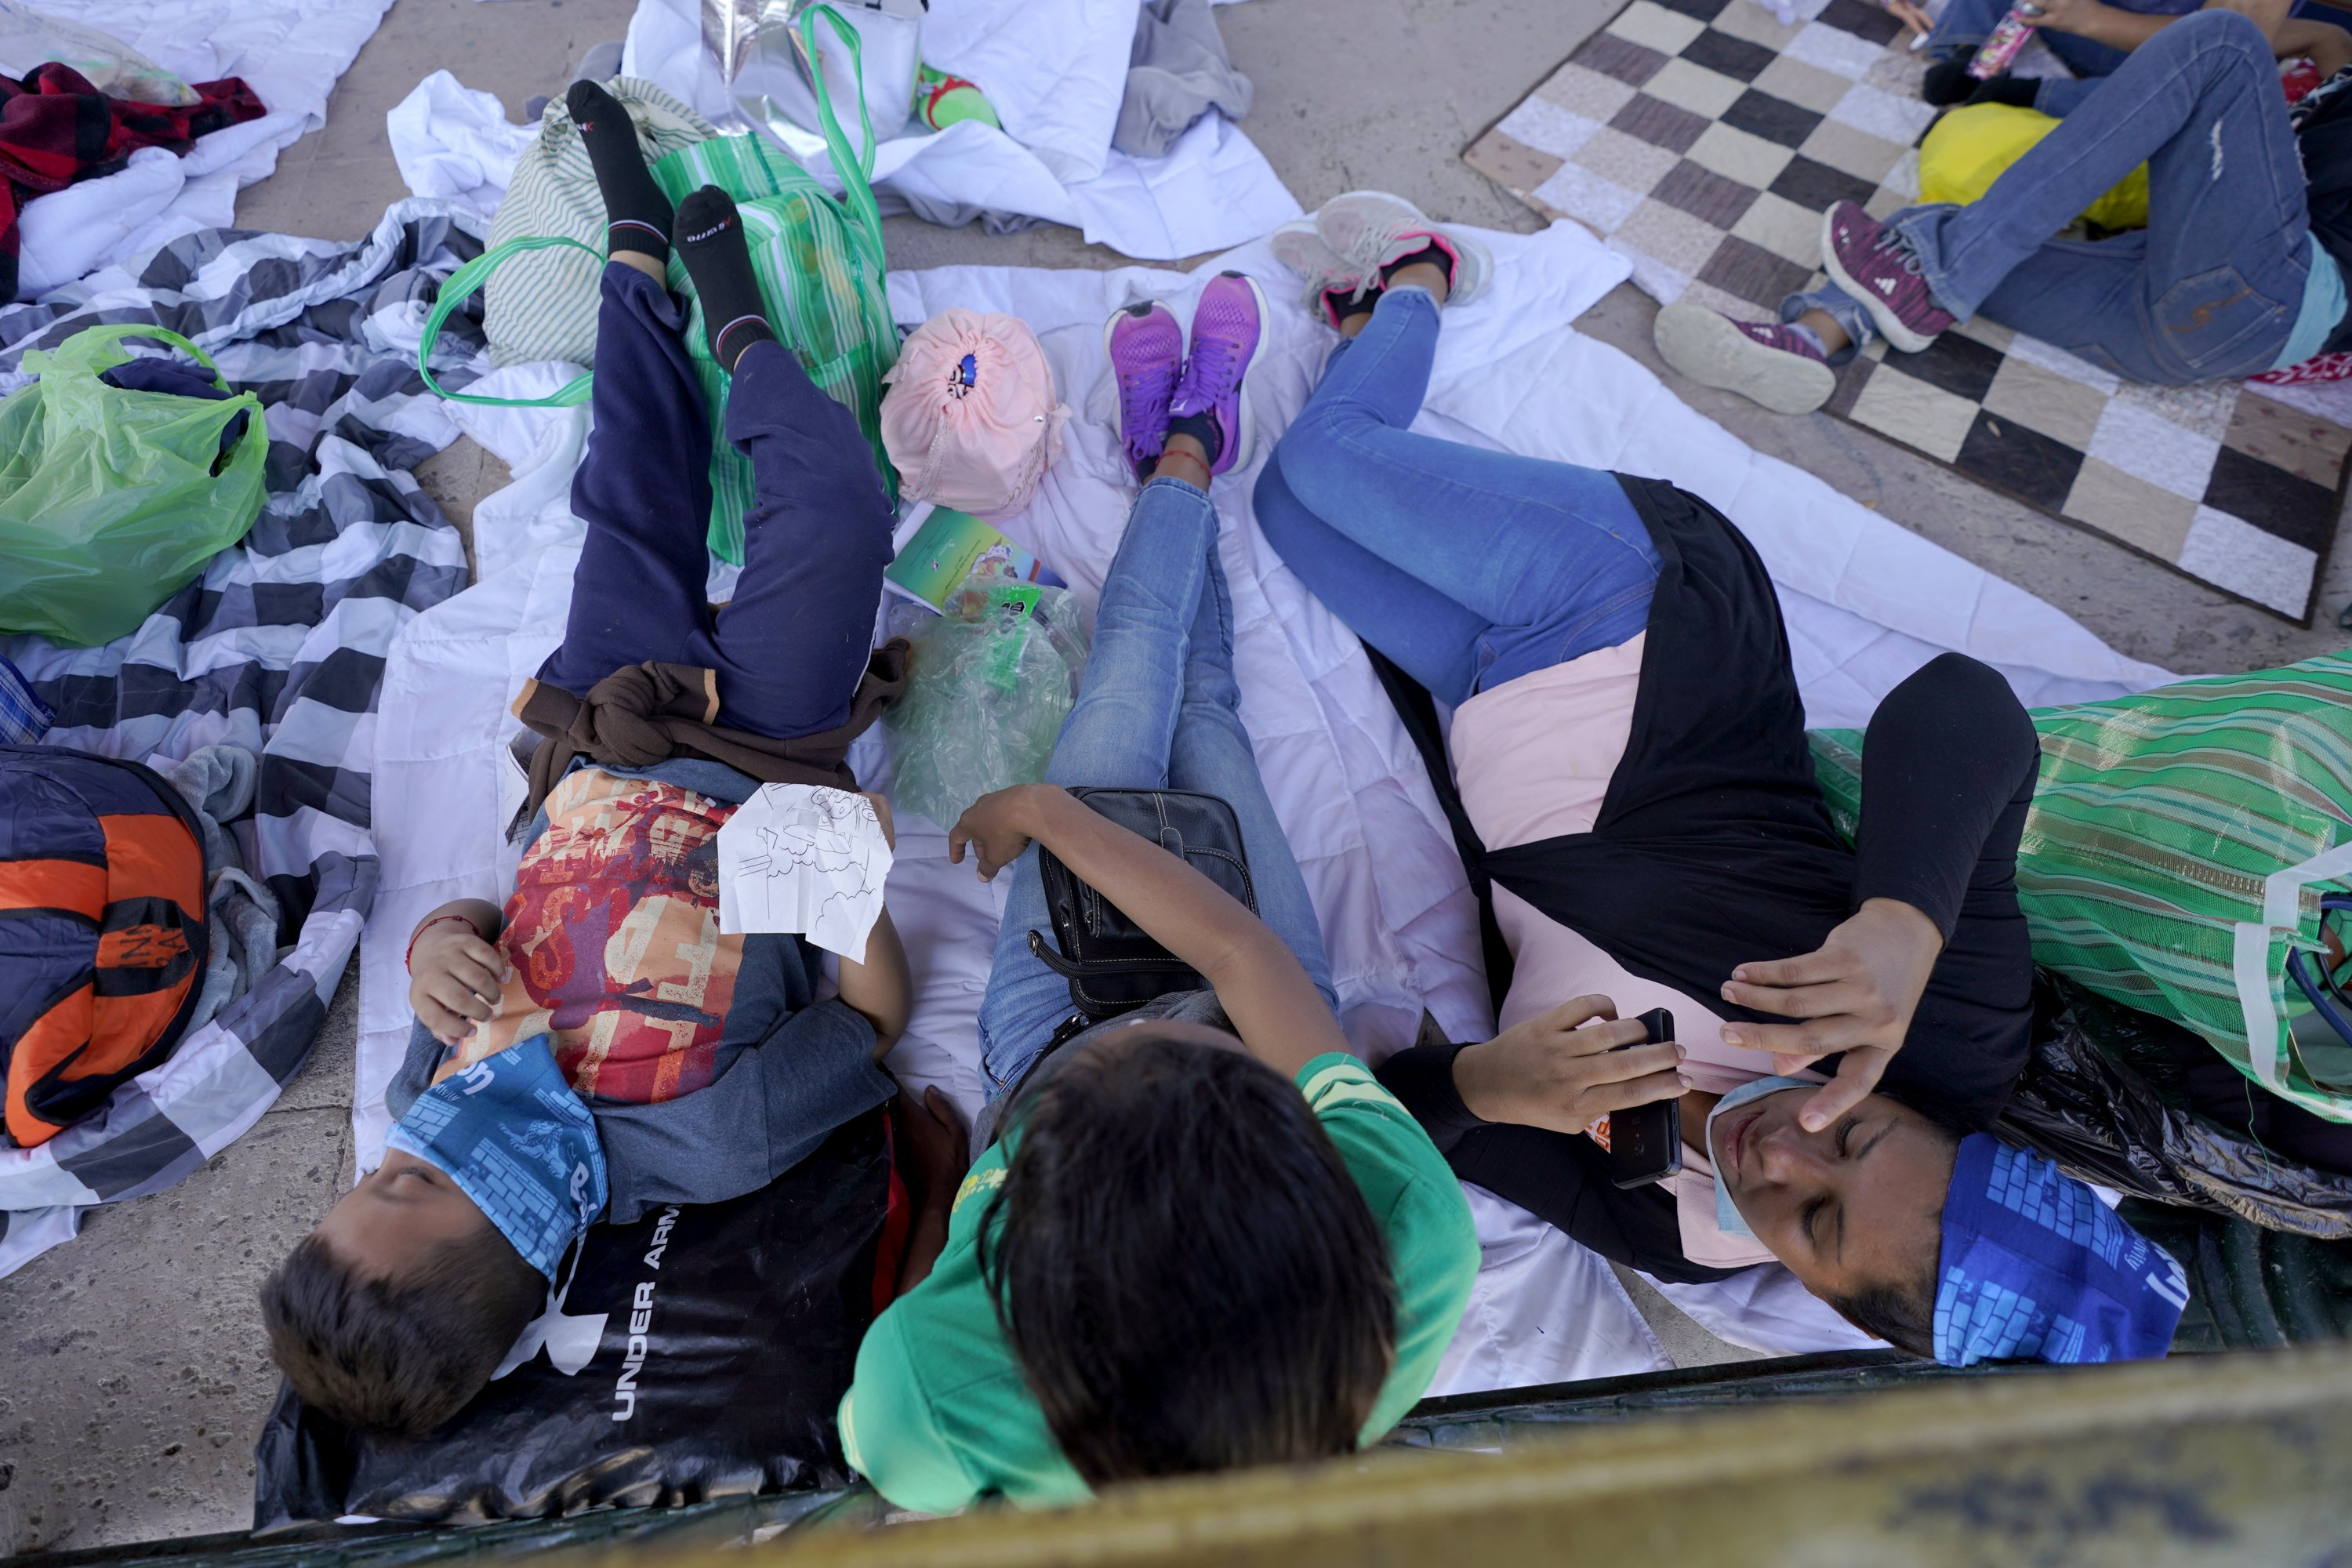 Migrants rest in a gazebo at a park after a large group of deportees were pushed by Mexican authorities off an area they had been staying after their expulsion from the U.S., in Reynosa, Mexico, March 20, 2021. (AP Photo/Julio Cortez)